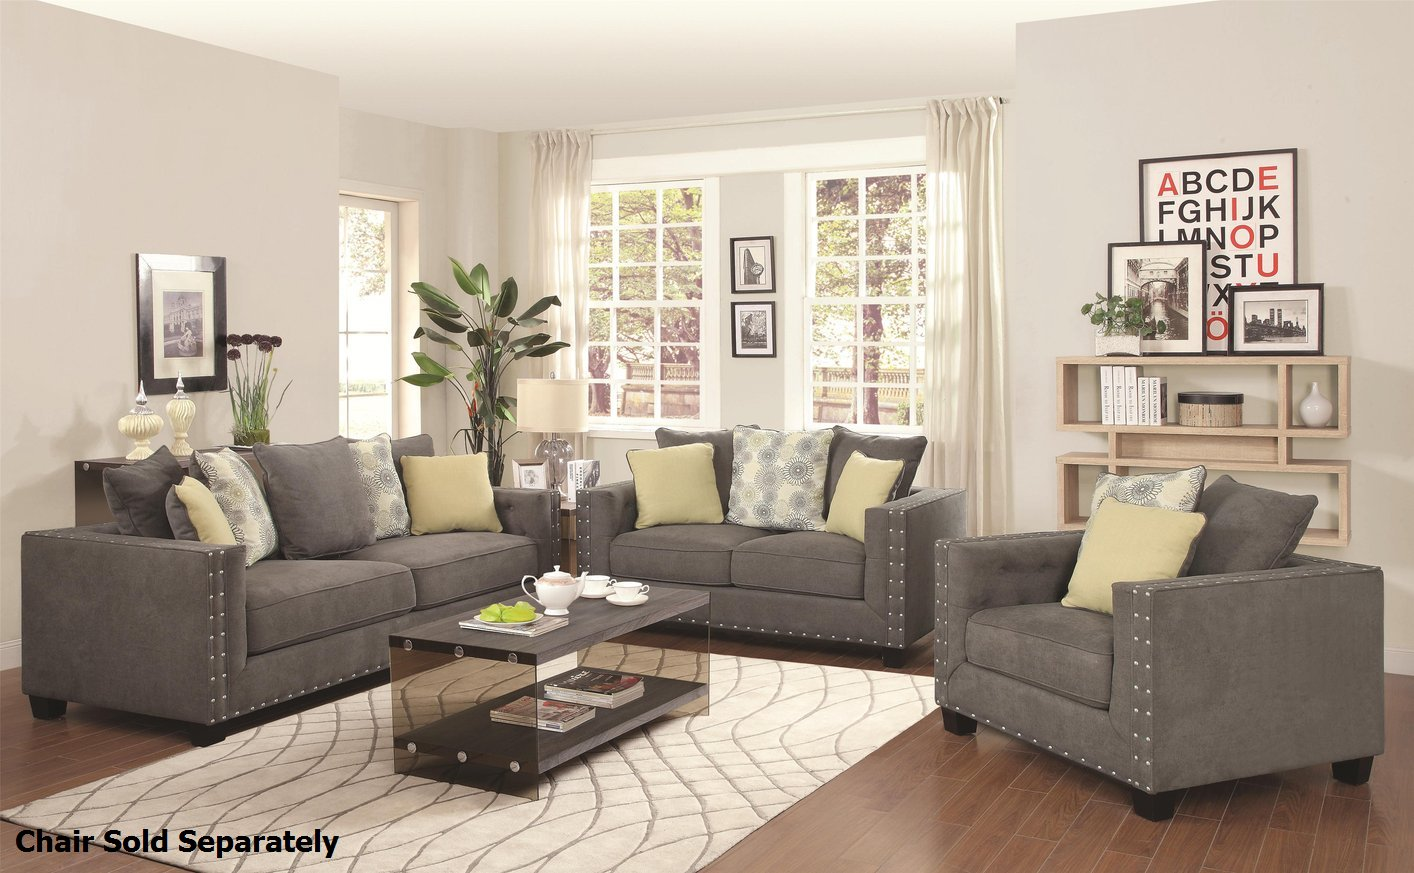 Kelvington Grey Fabric Reclining Sofa and Loveseat Set & Kelvington Grey Fabric Reclining Sofa and Loveseat Set - Steal-A ... islam-shia.org